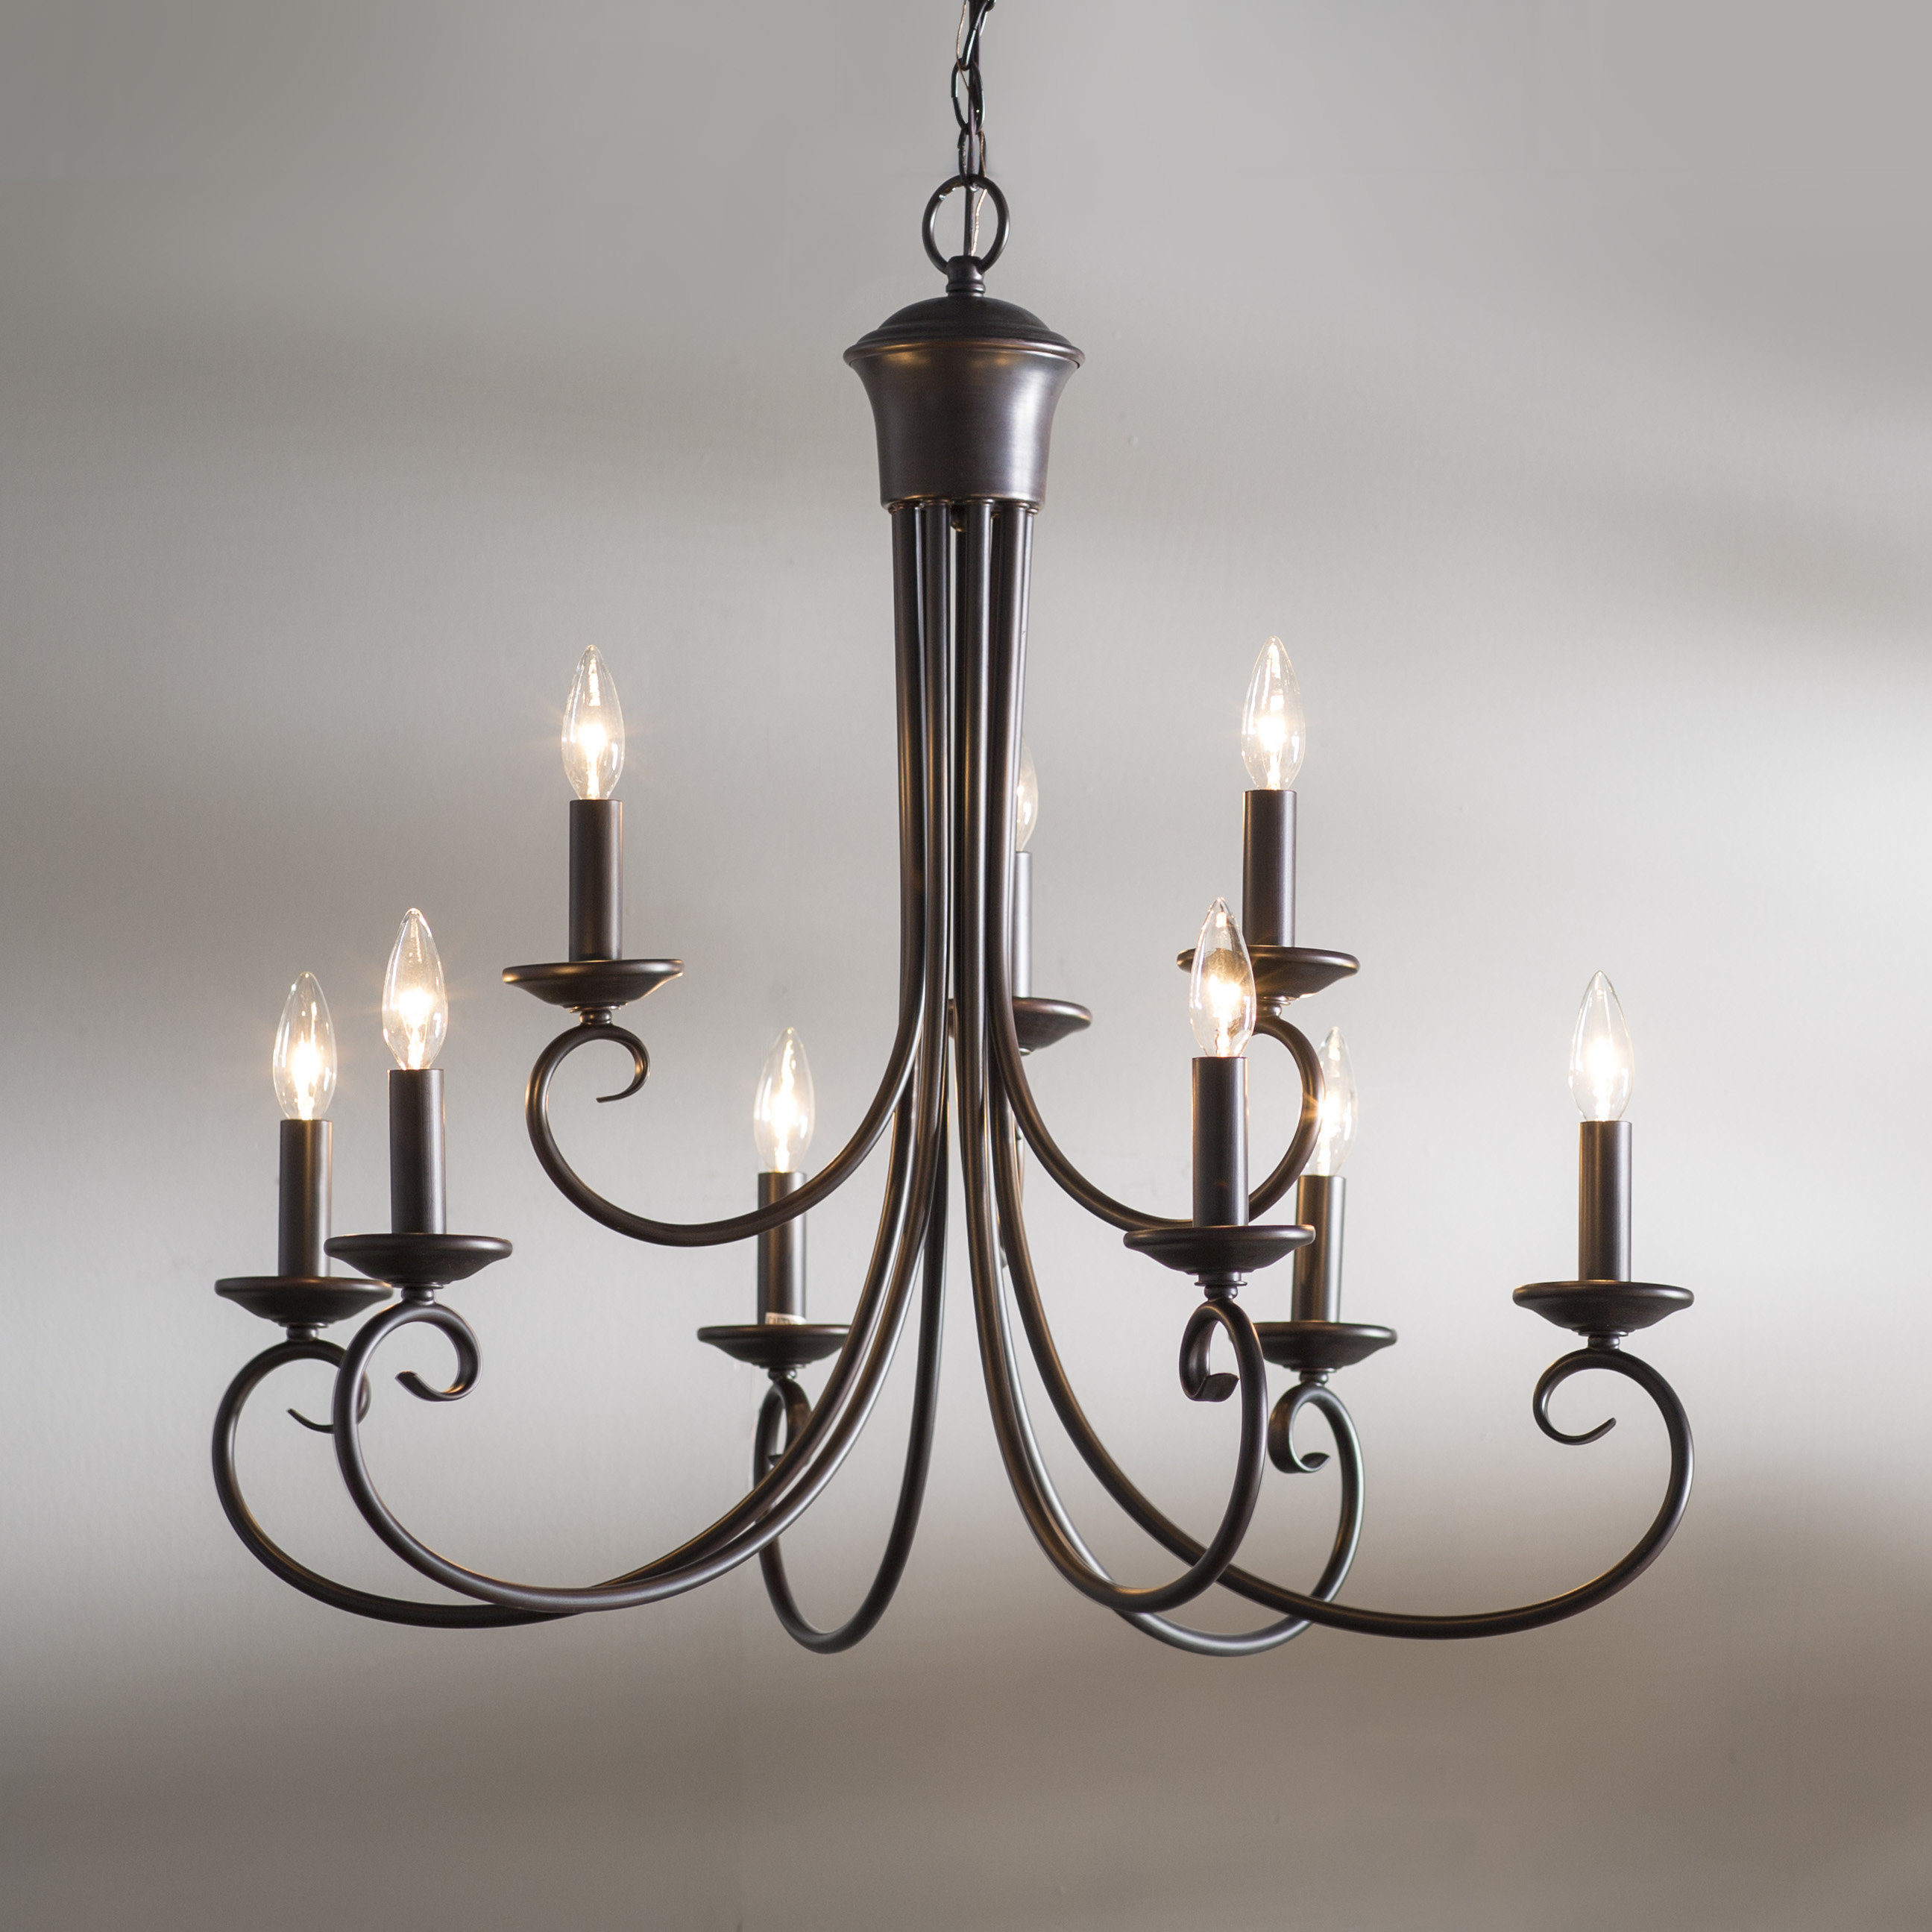 Kenedy 9 Light Candle Style Chandelier For Gaines 9 Light Candle Style Chandeliers (Gallery 4 of 30)